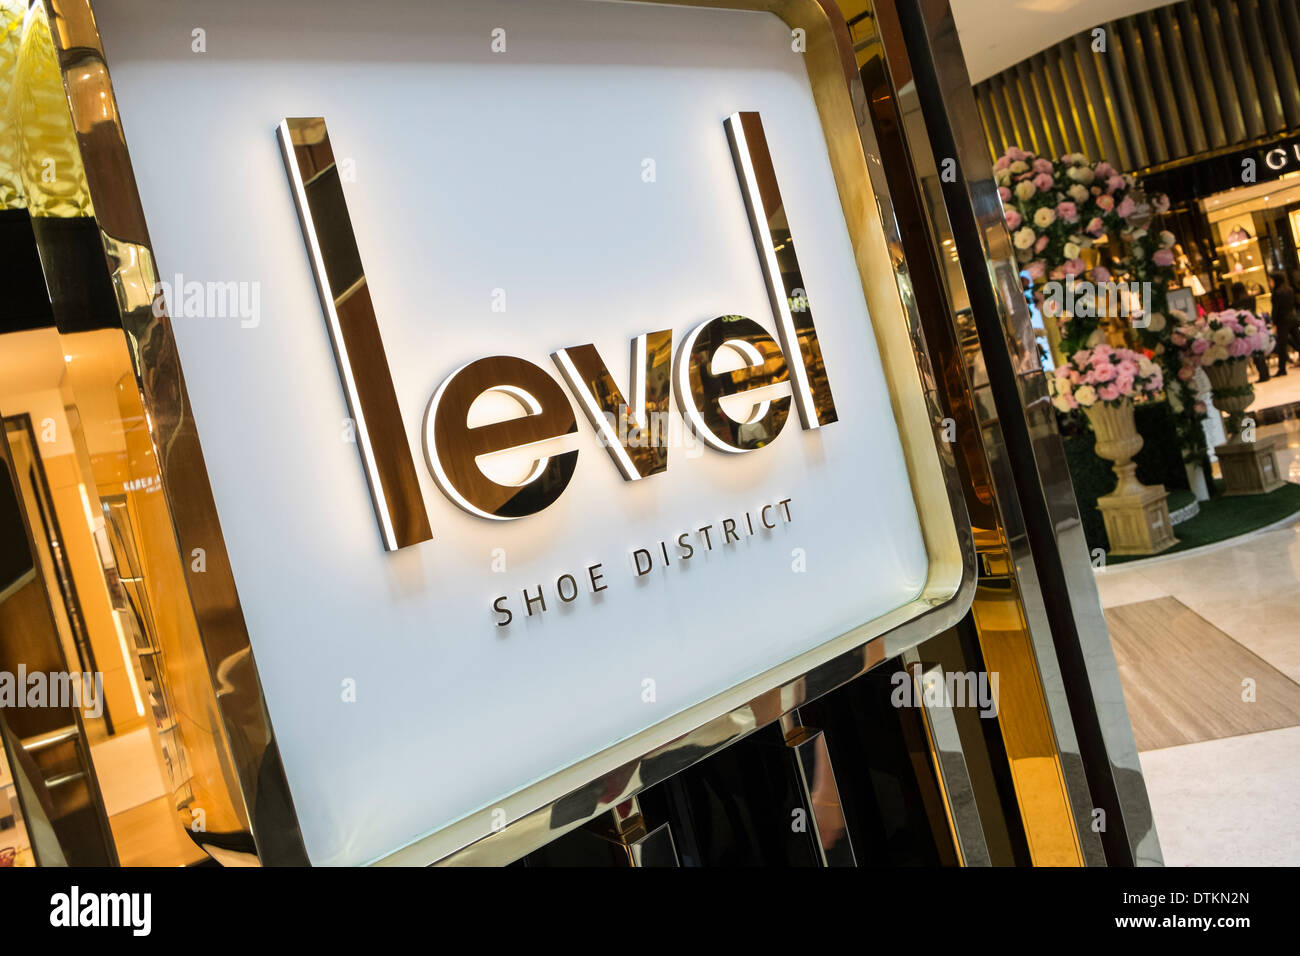 Level Shoe District sign in Dubai Mall United Arab Emirates - Stock Image